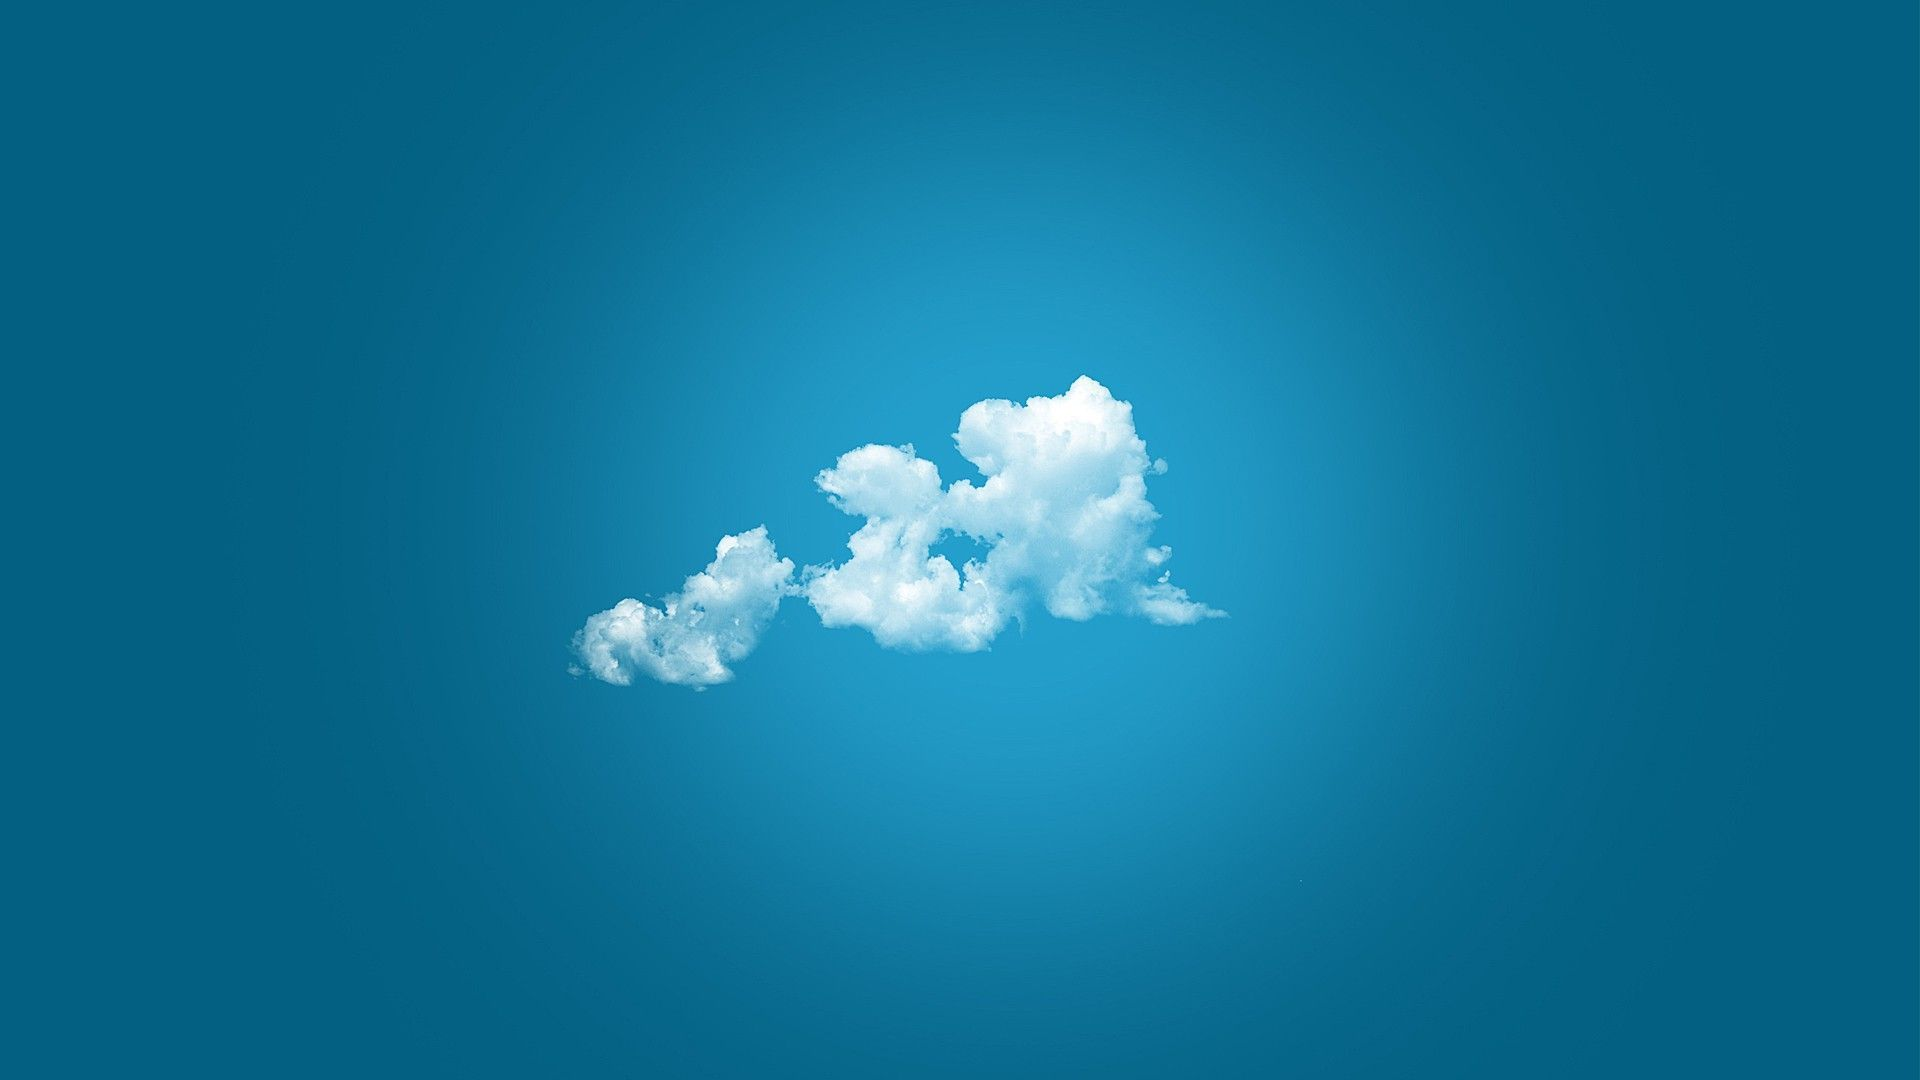 clouds hd wallpaper minimalist - photo #6